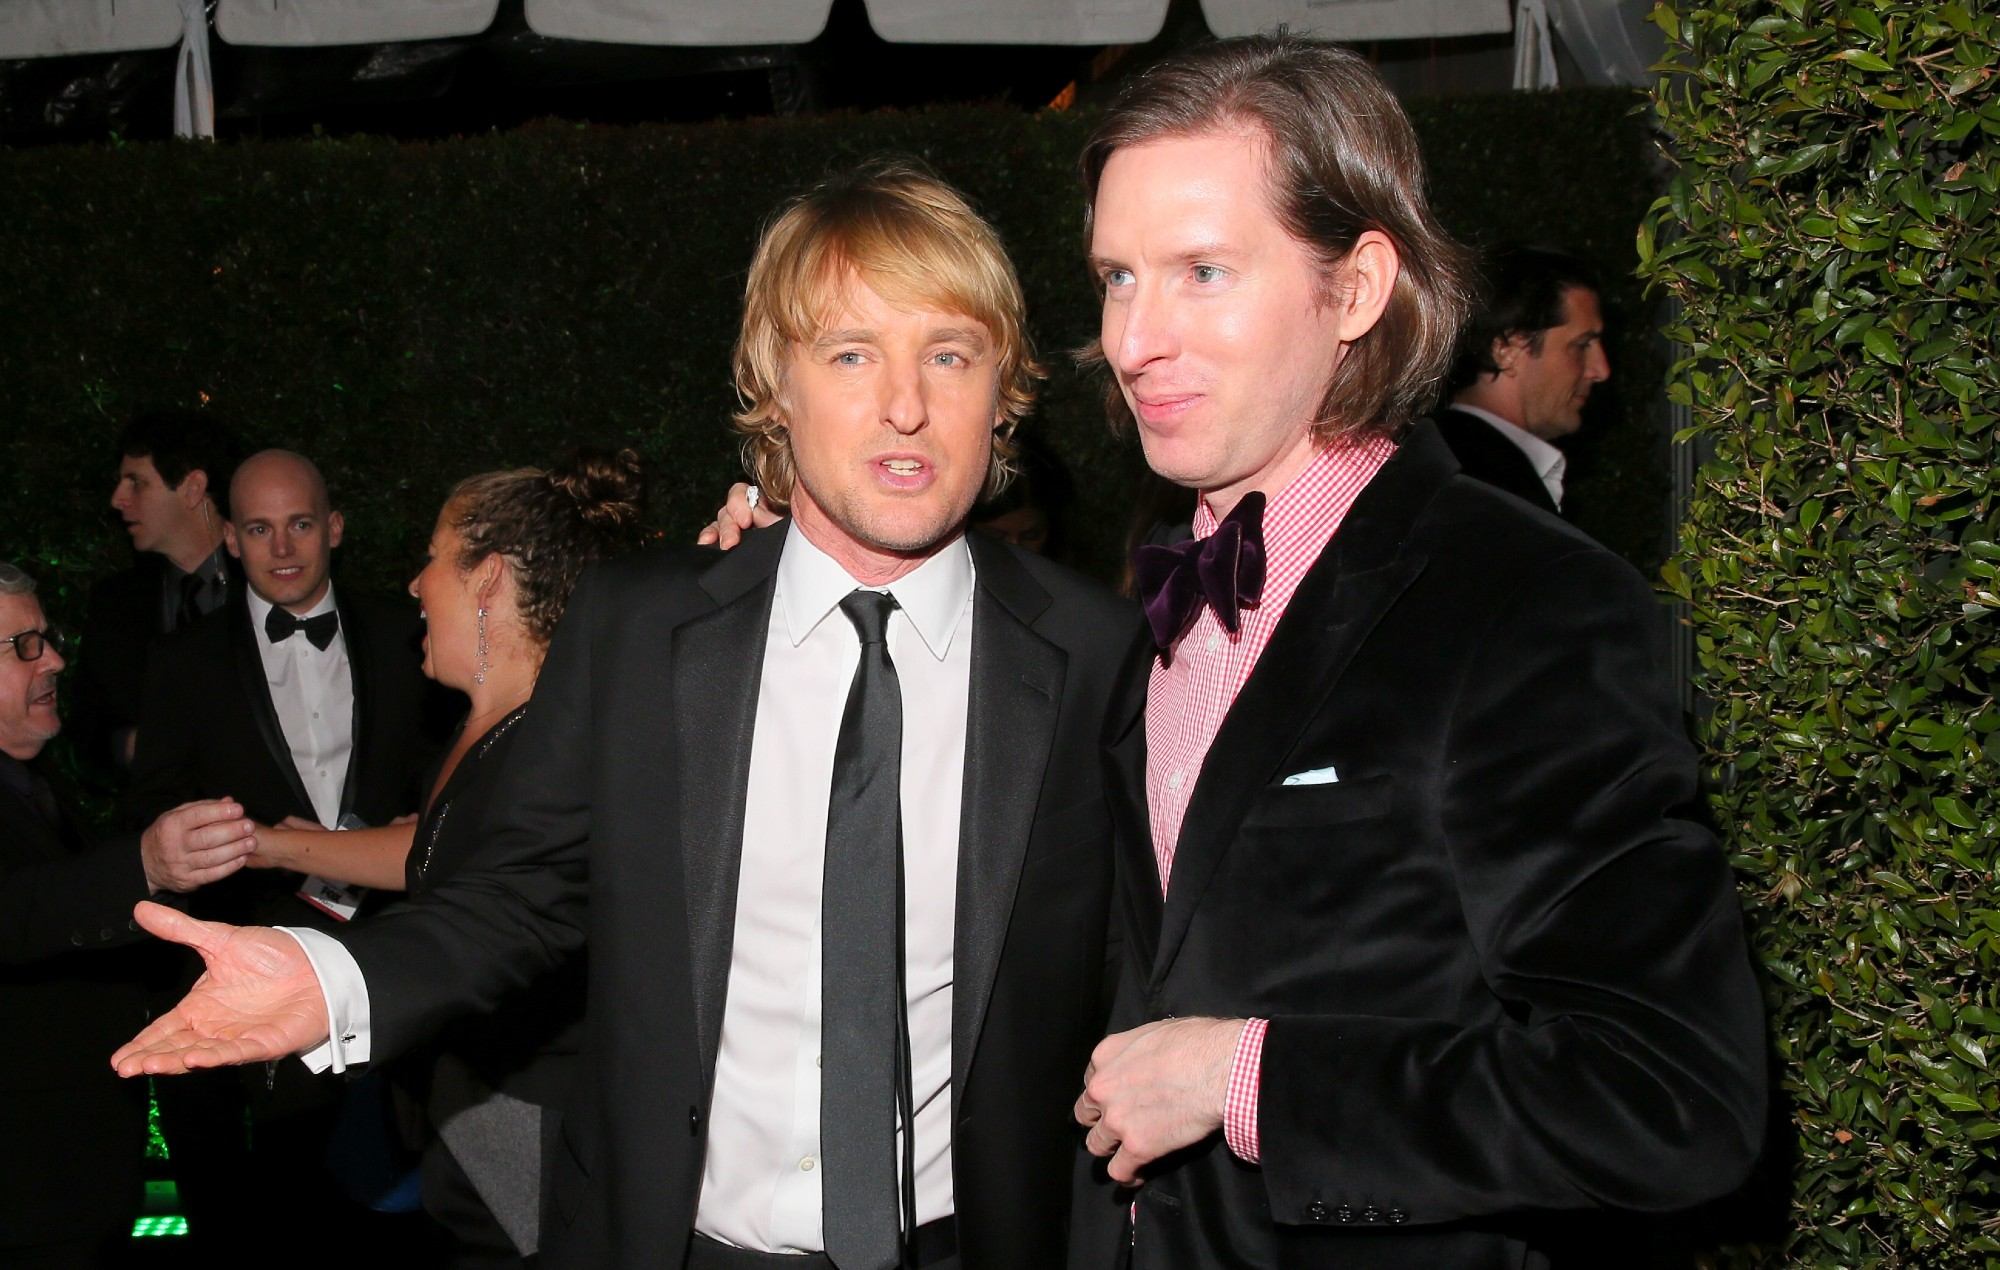 Owen Wilson and Wes Anderson at the Golden Globes